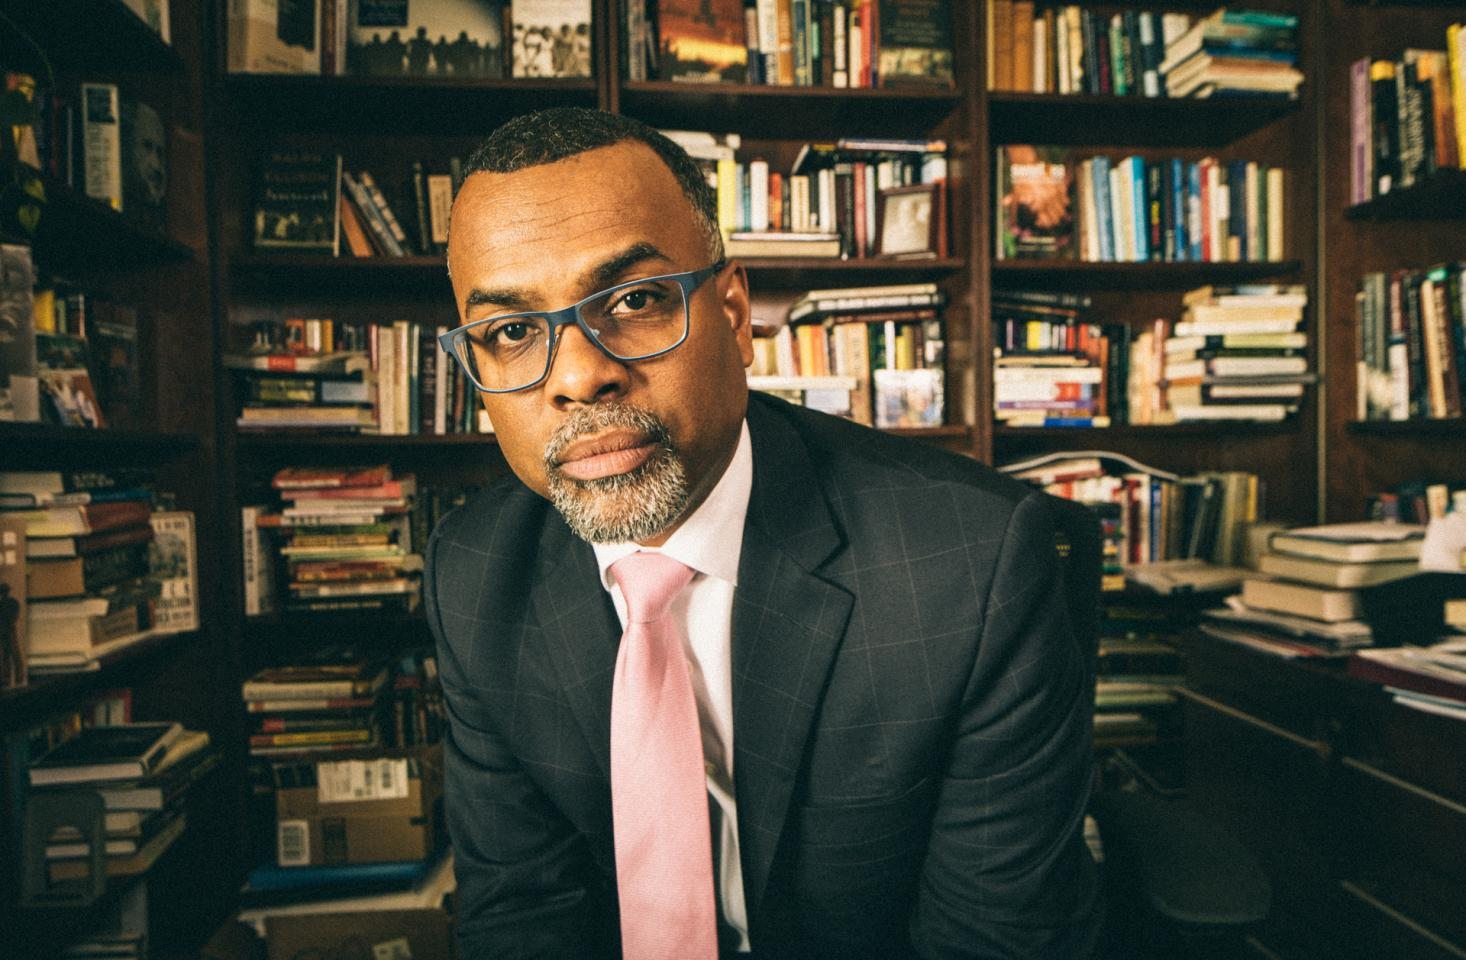 Eddie Glaude sitting in front of bookcases looking at camera